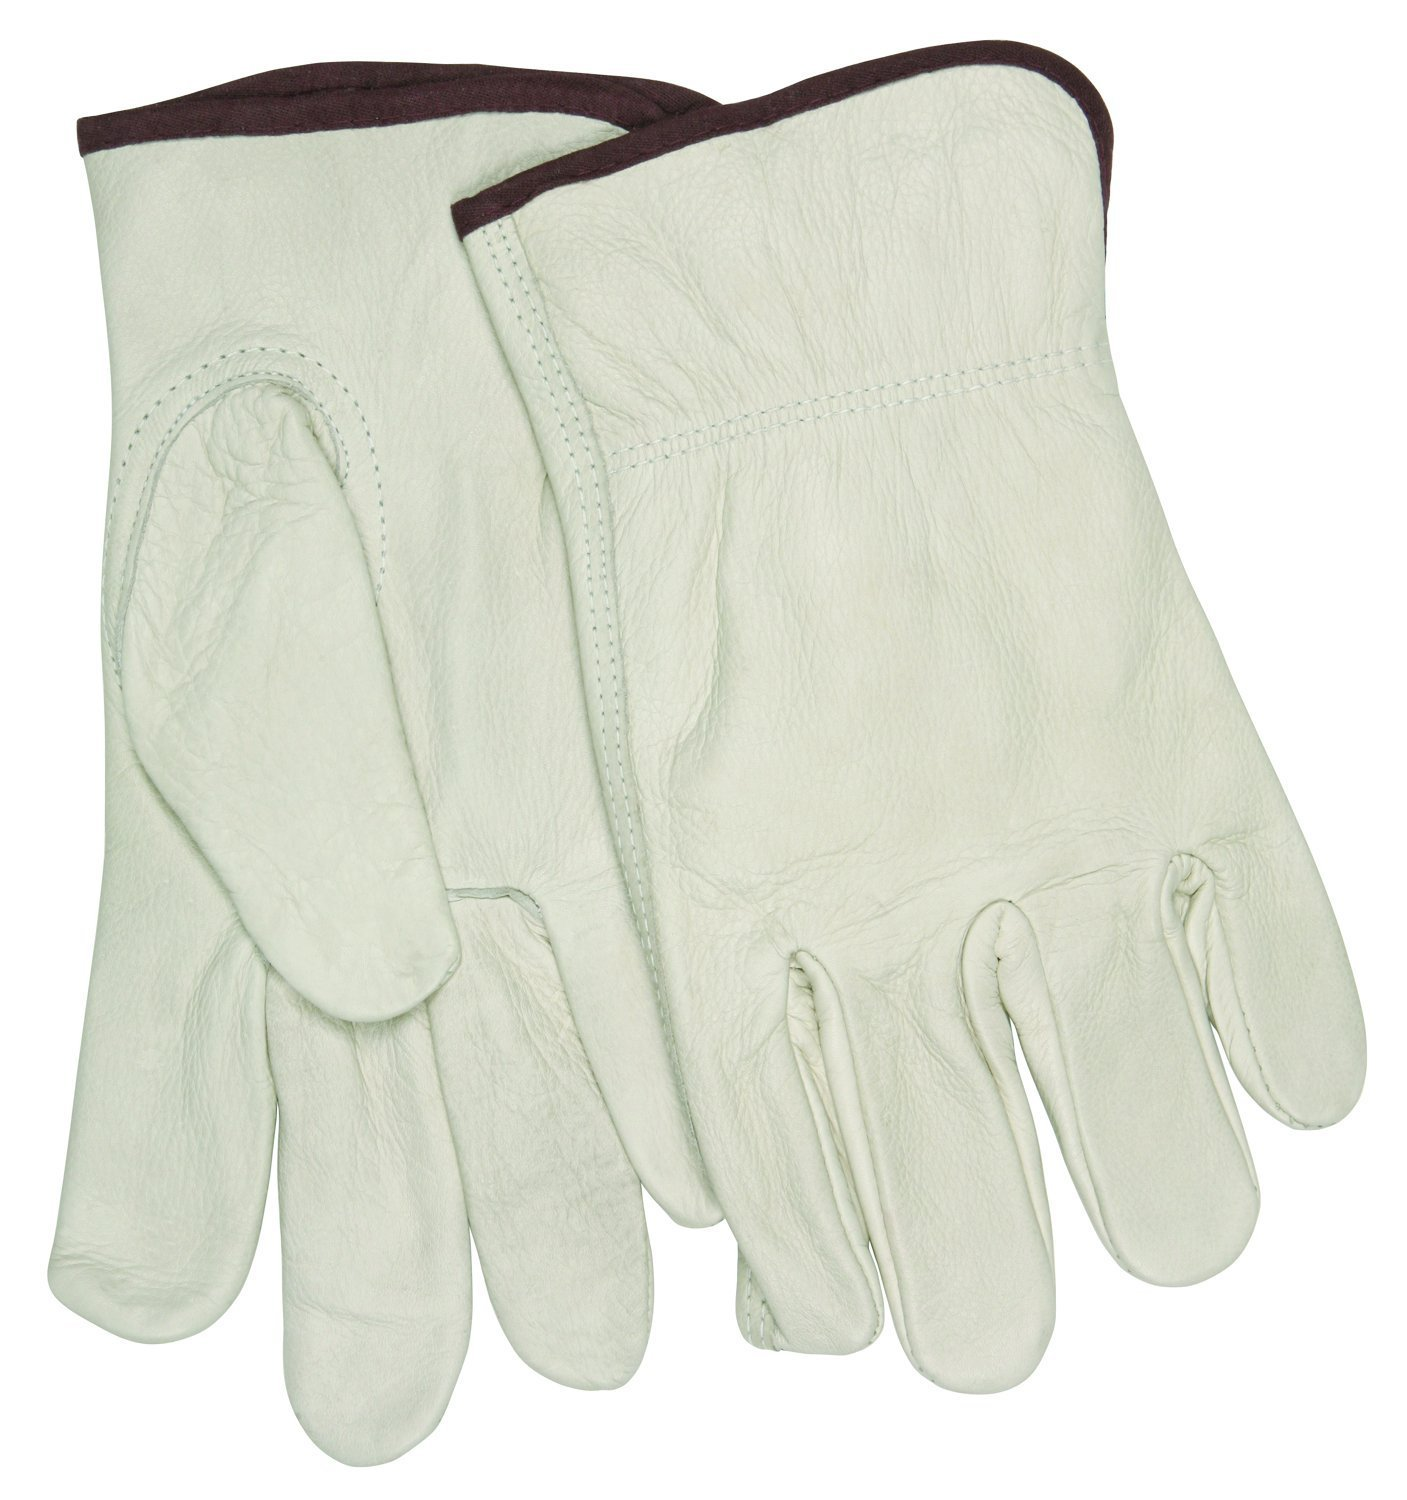 MCR Safety 32113M Industry Grade Unlined Grain Cow Leather Driver Men's Gloves with Keystone Thumb, Cream, Medium, 1-Pair